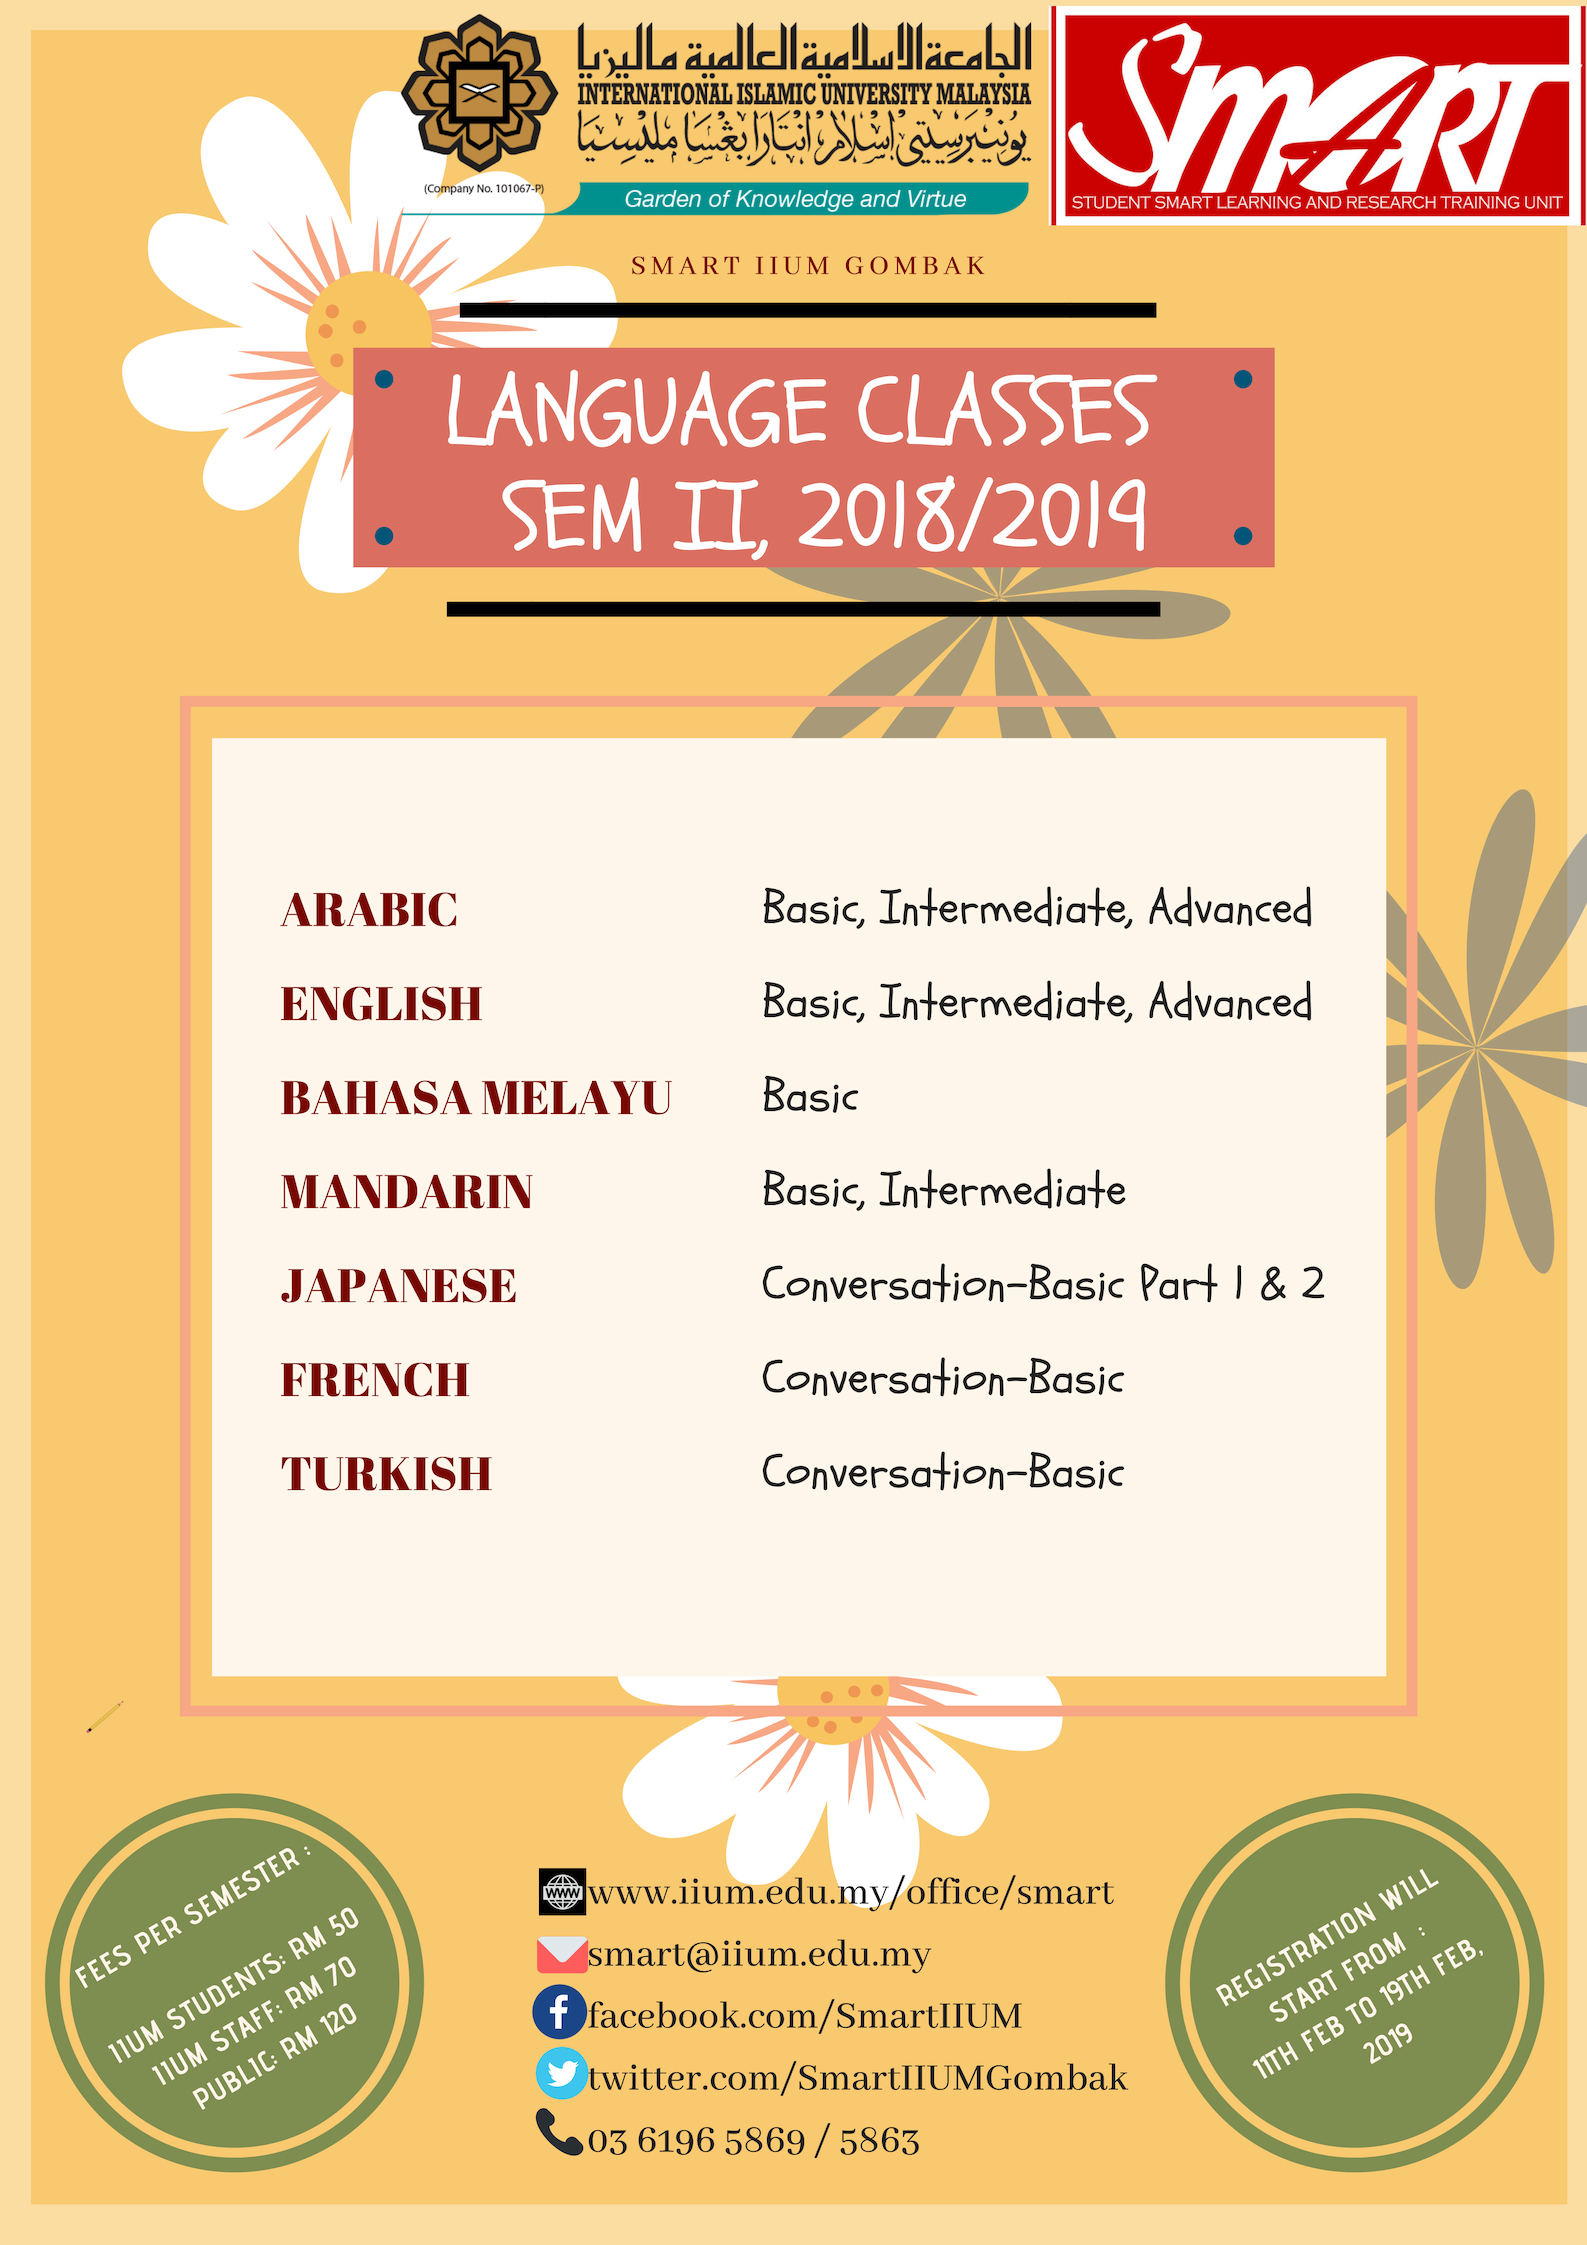 REGISTER FOR LANGUAGE CLASSES, SEM 2, 2018/2019